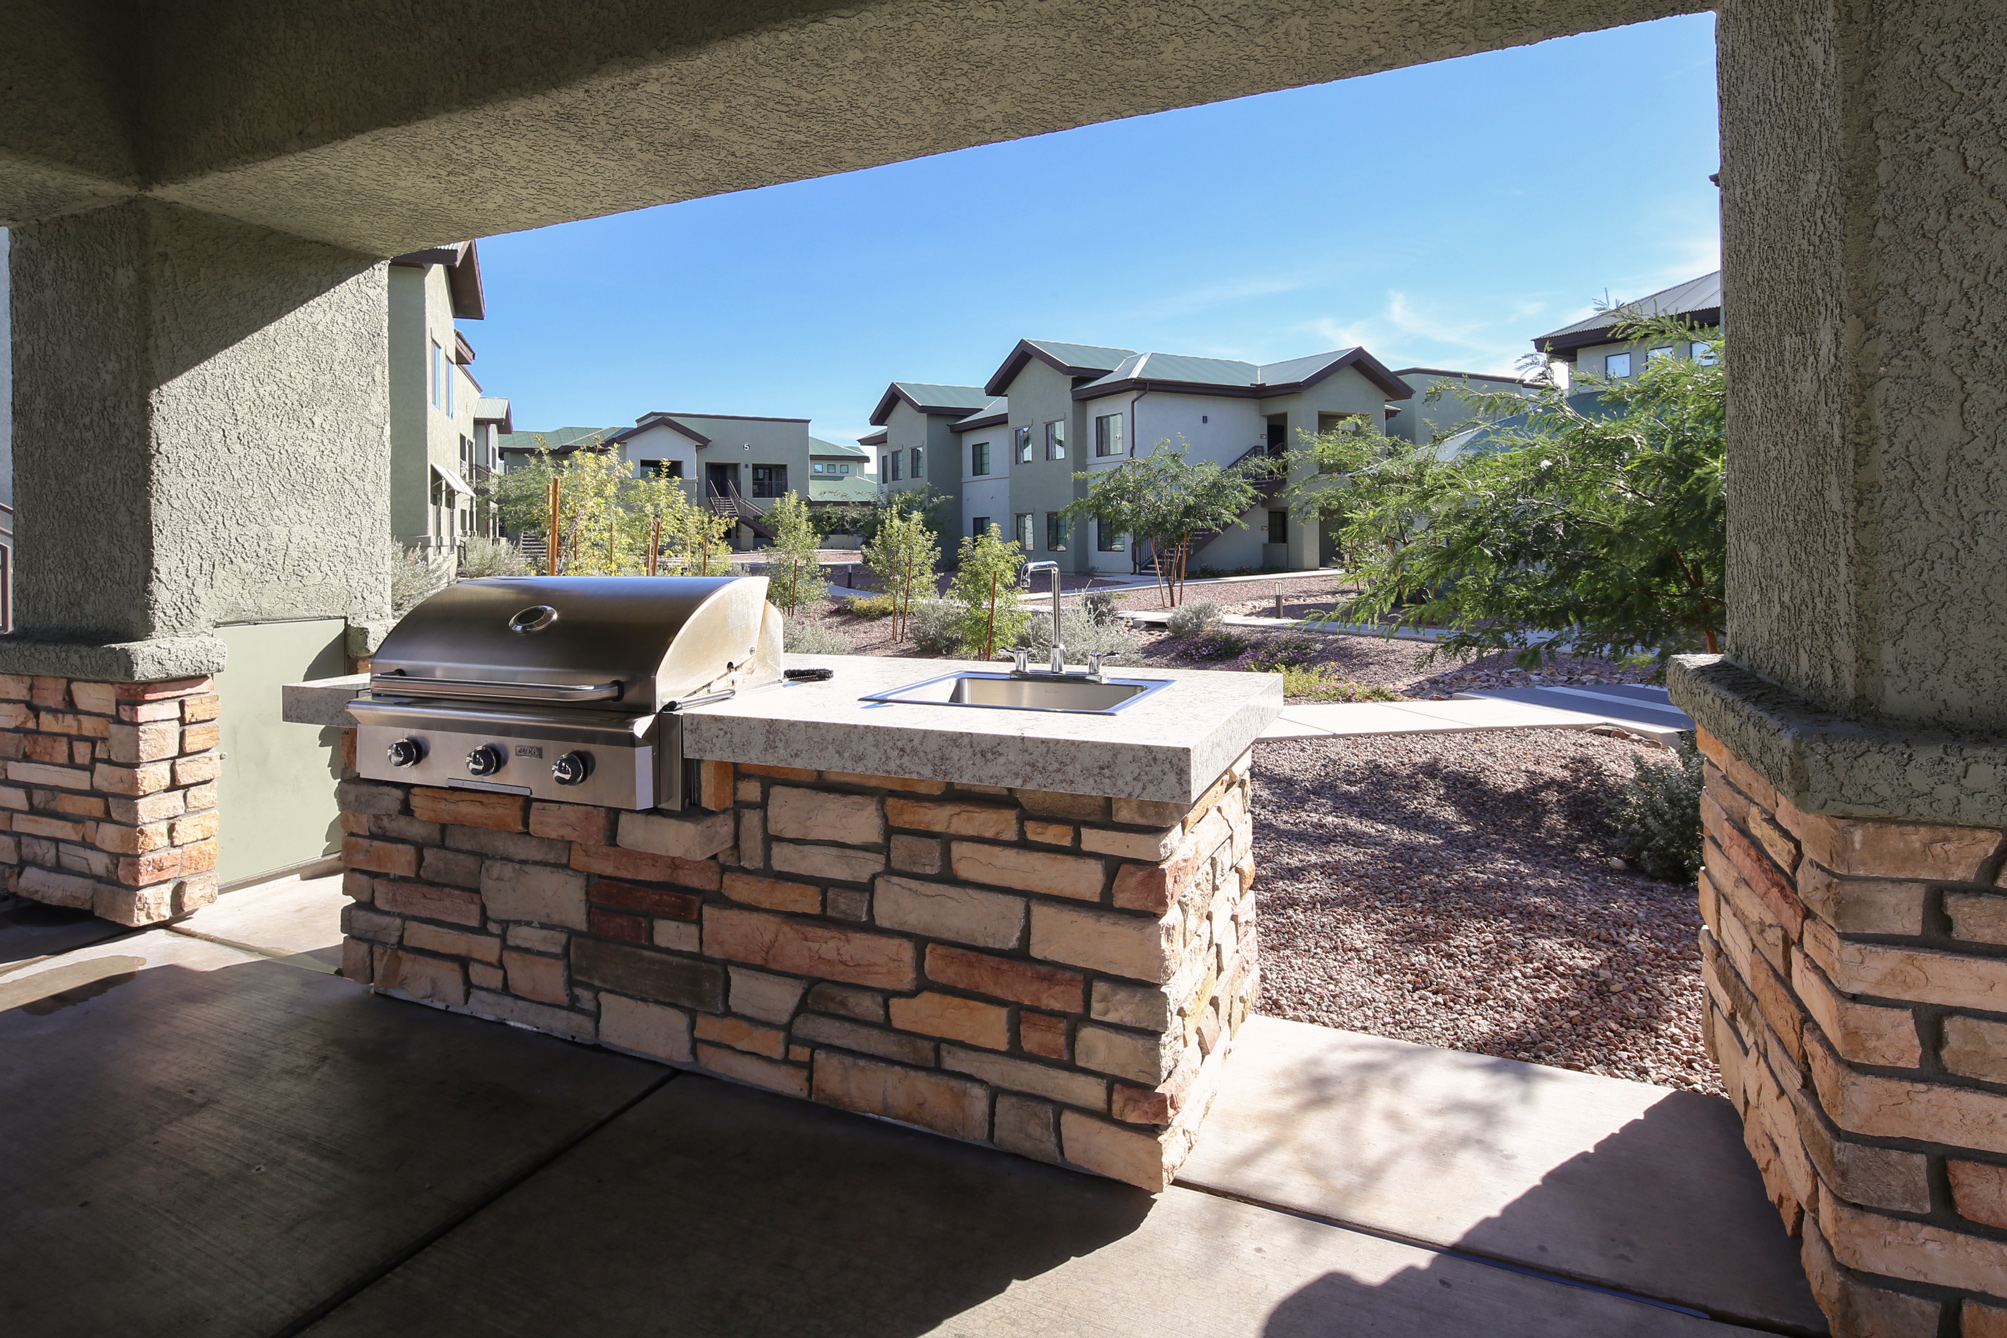 Beautiful outdoor gathering spaces with cooking stations and fireplace